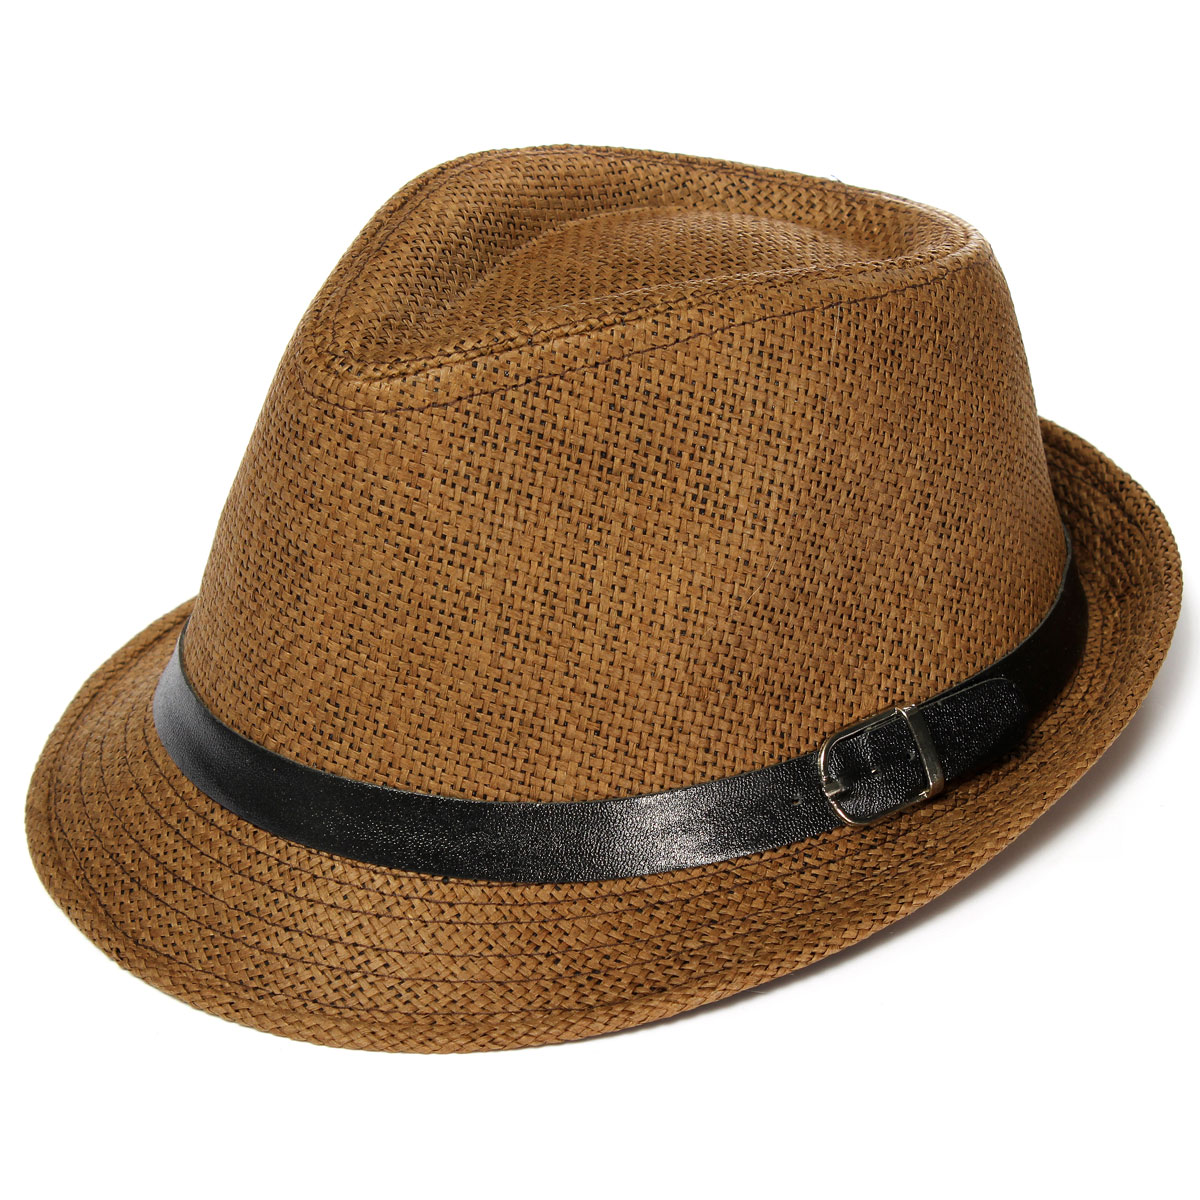 Difference Between Fedora And Trilby